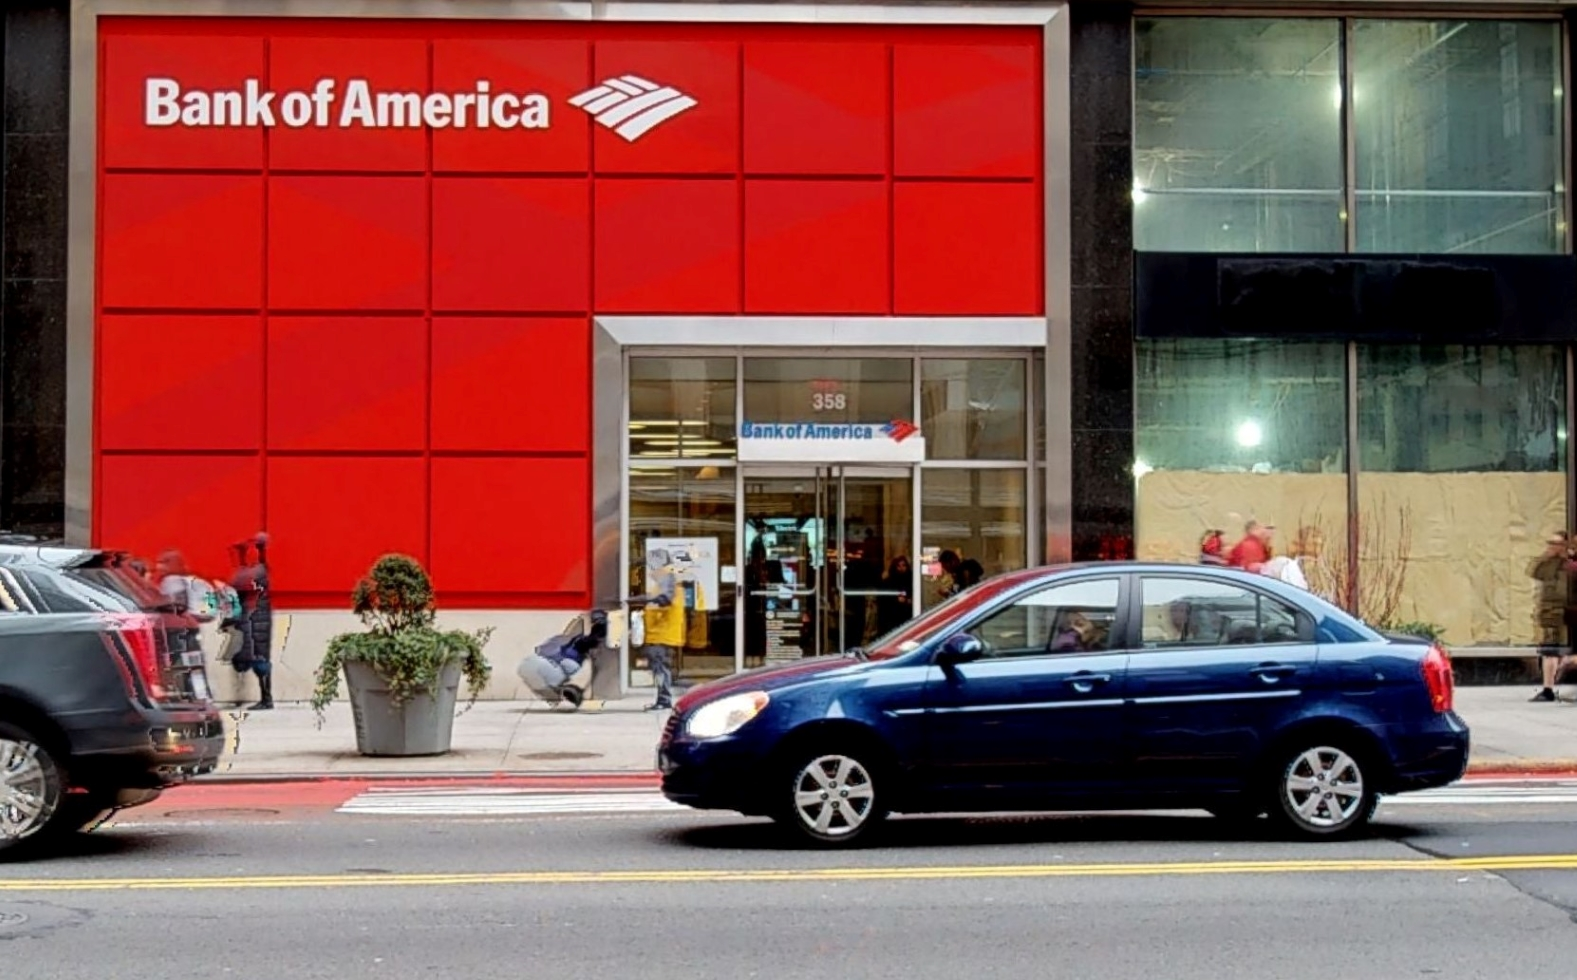 Bank of America financial center with walk-up ATM   358 5th Ave, New York, NY 10001